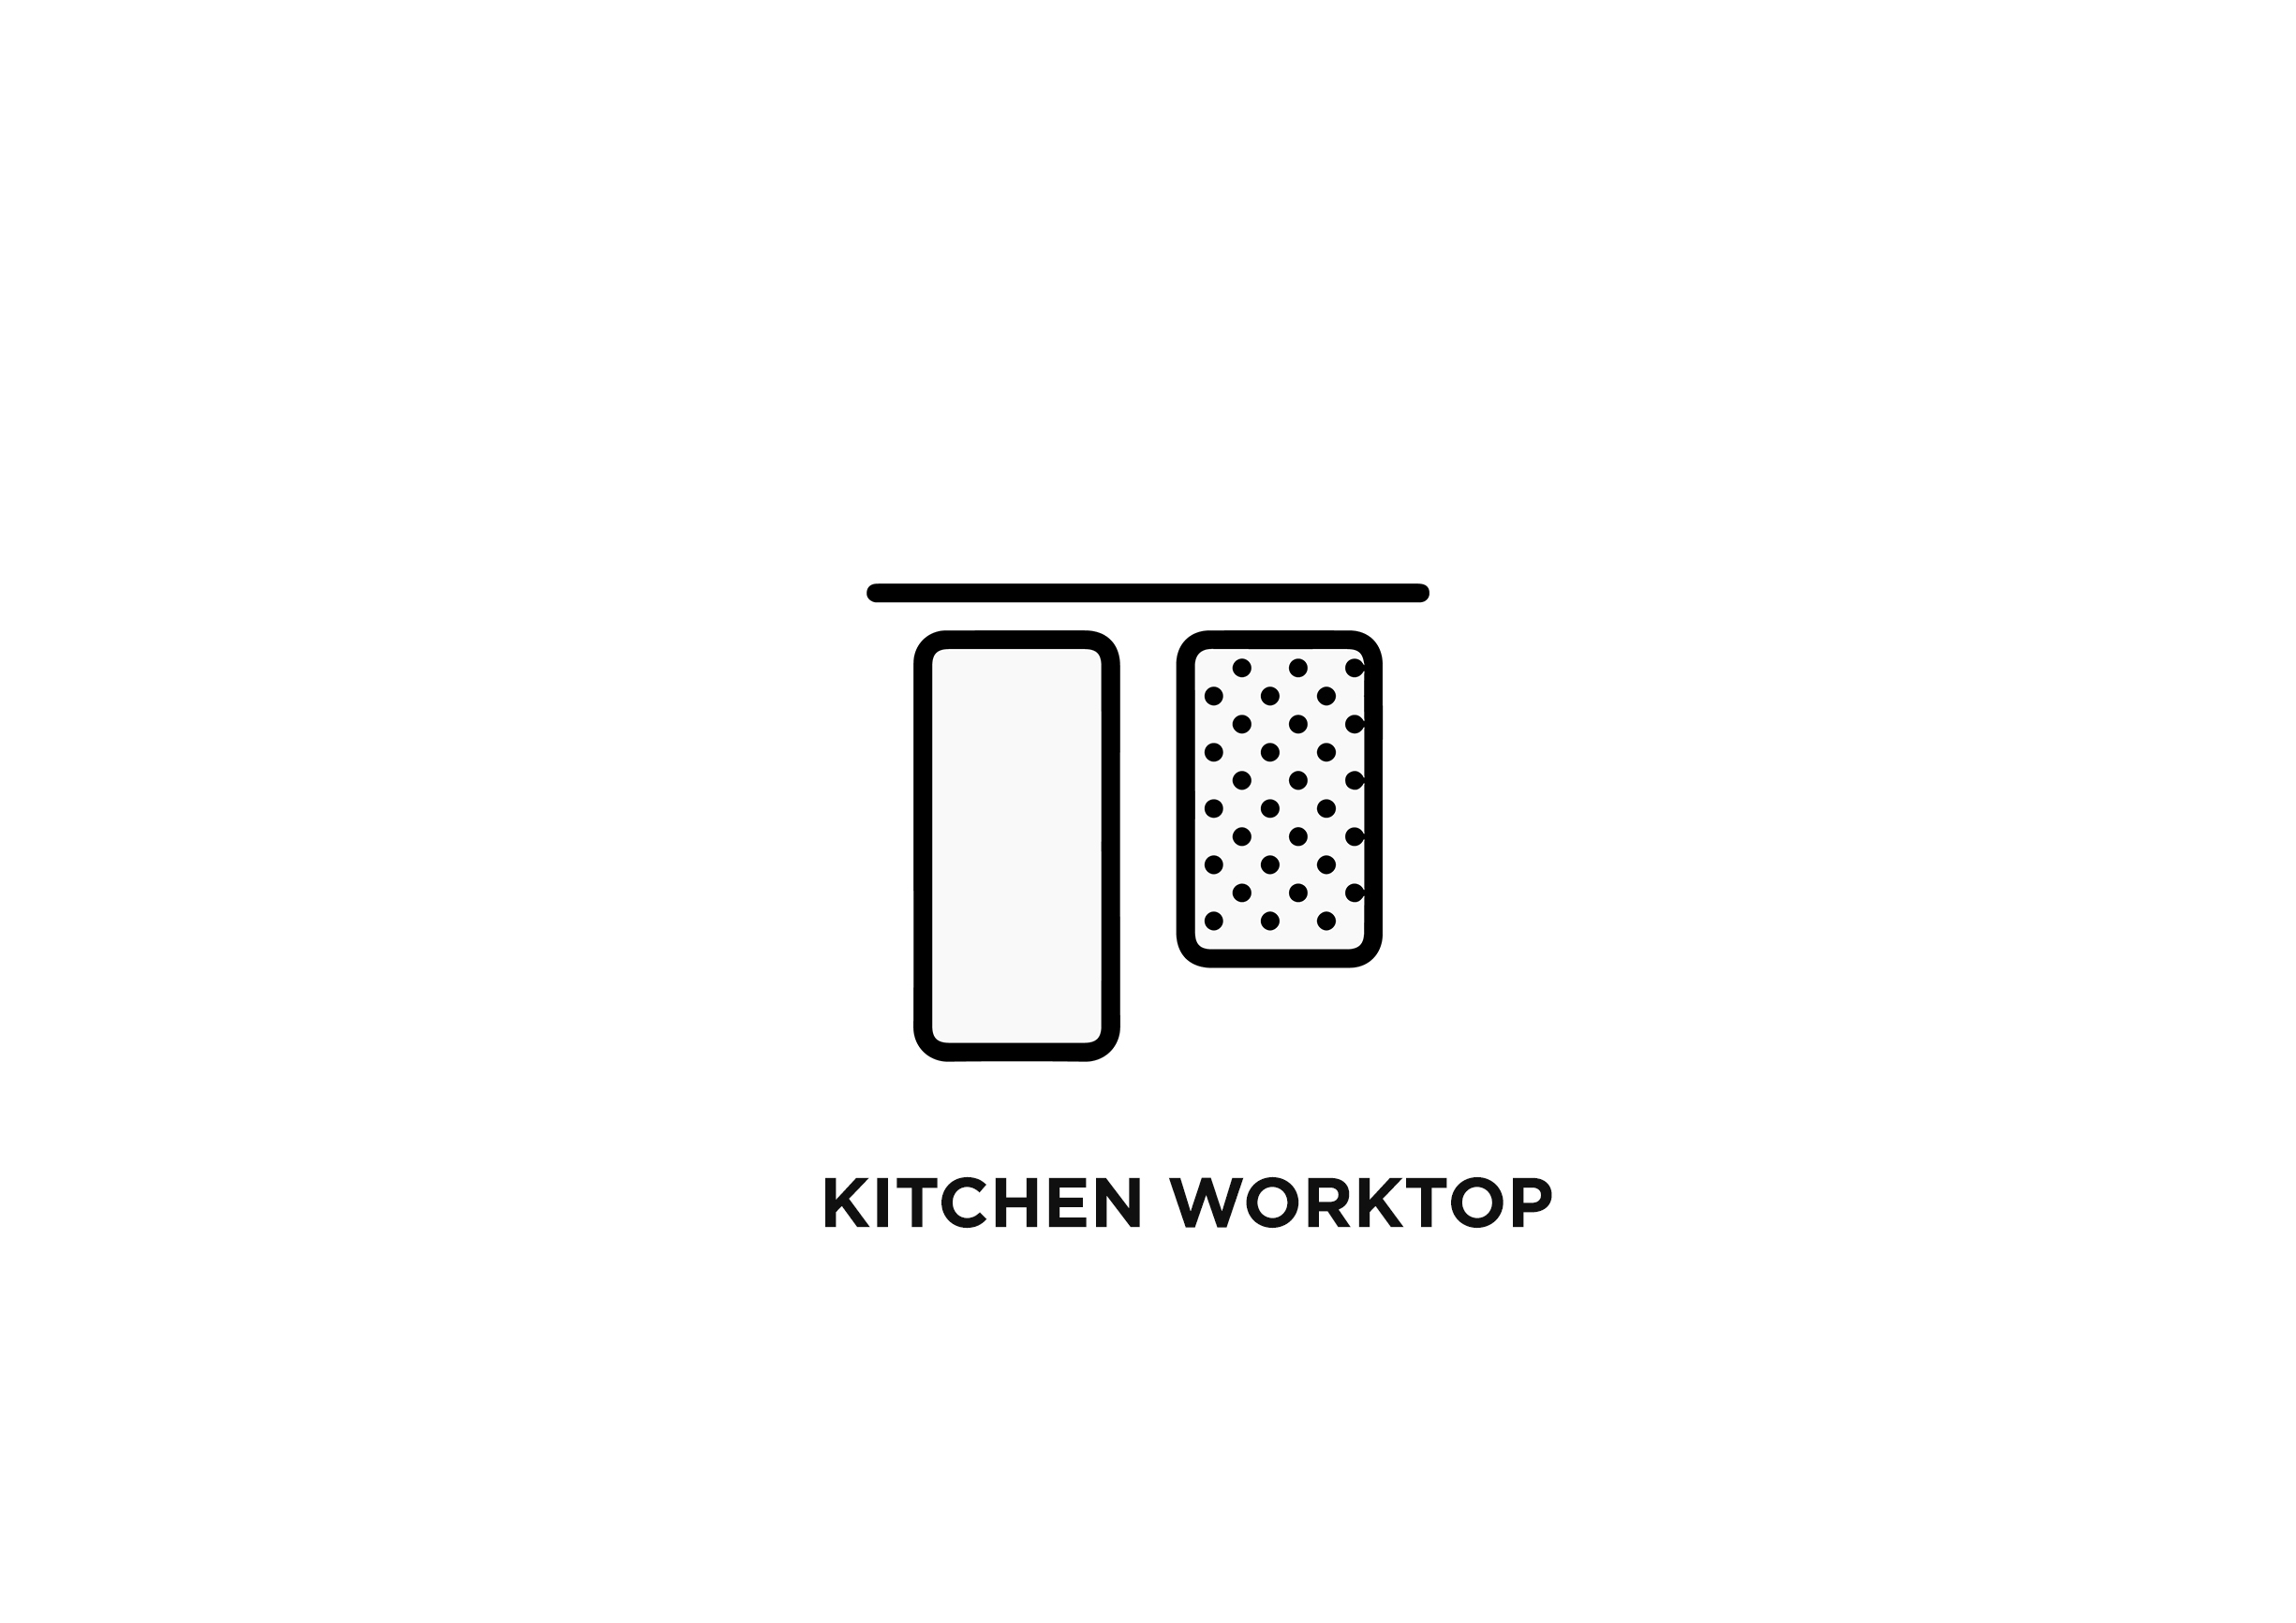 kitchenworktopforweb.jpg